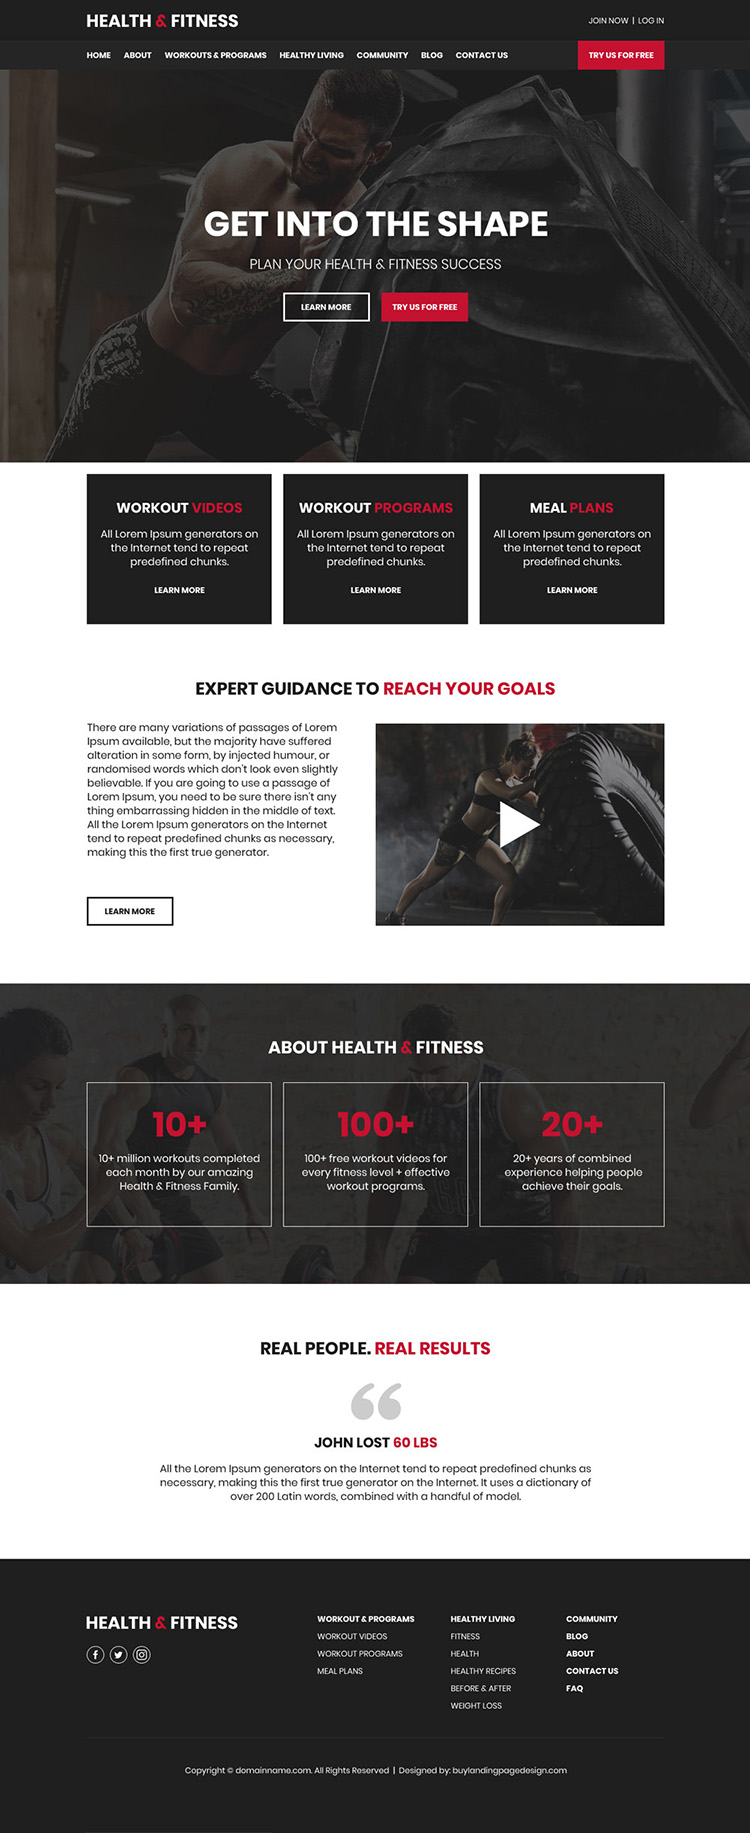 health and fitness programs responsive website design